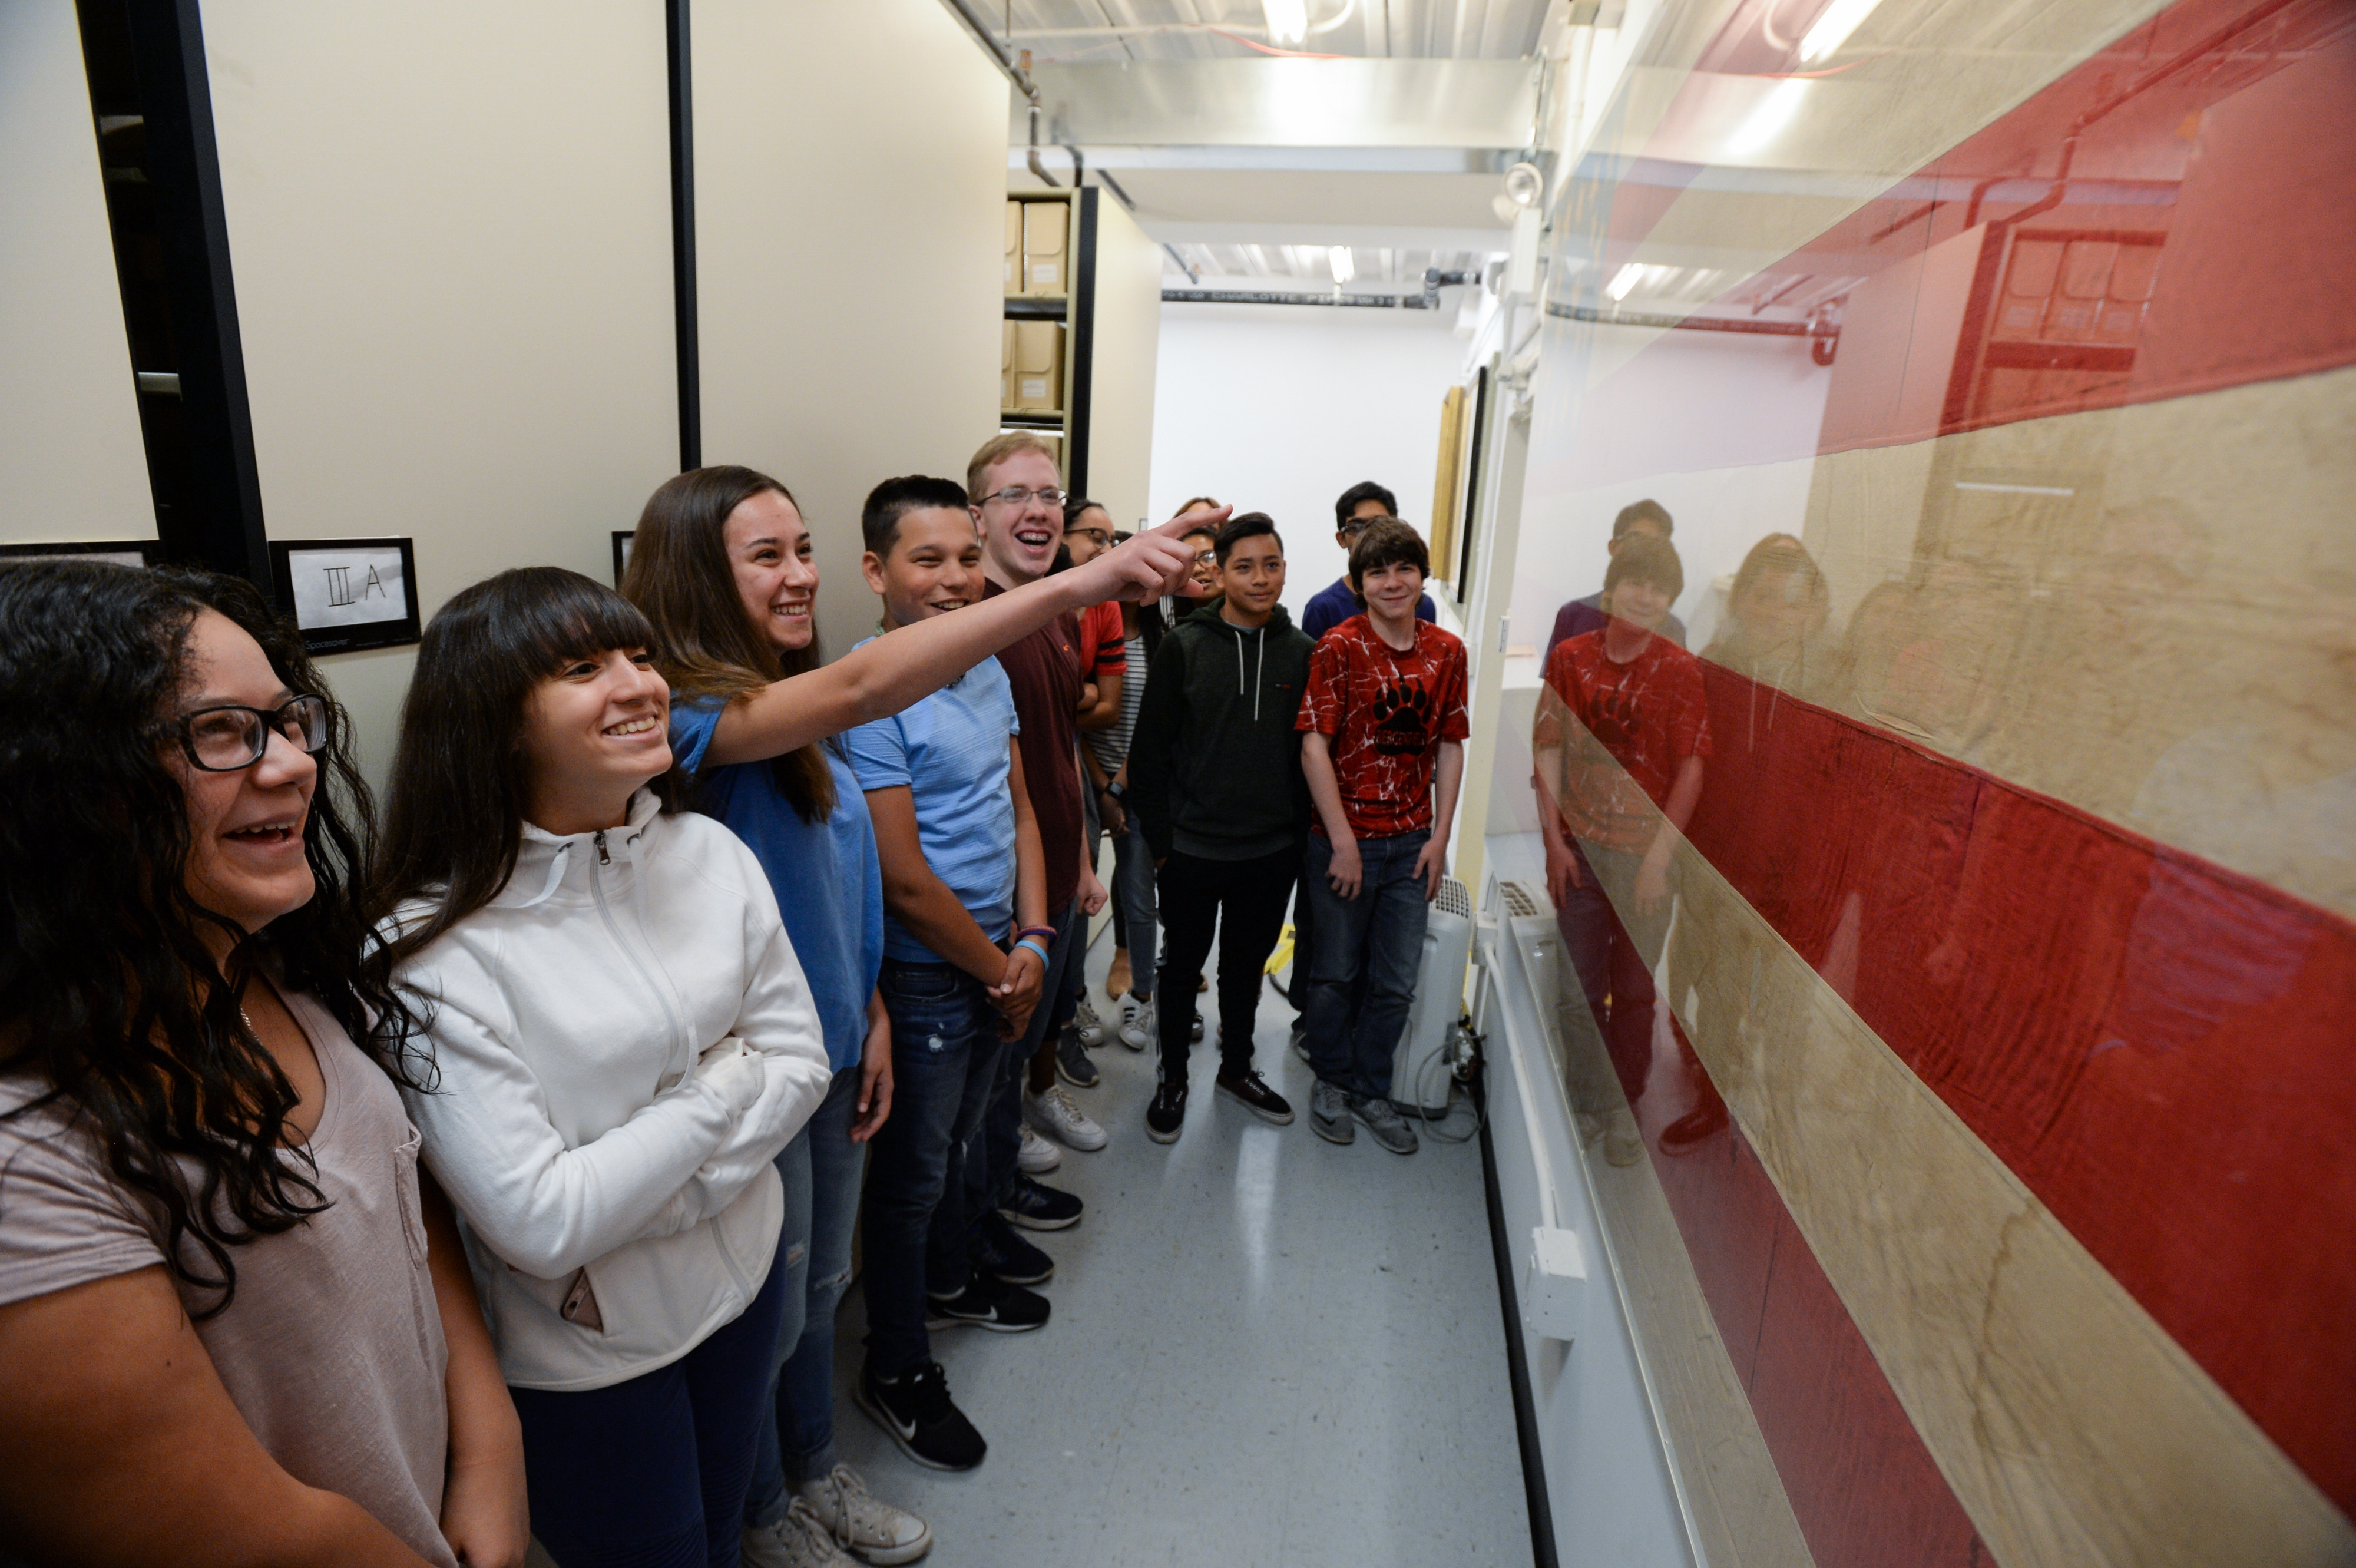 Students from Roy Brown Middle School in Bergenfield, New Jersey, examining a unique abolitionist flag in the Gilder Lehrman Collection